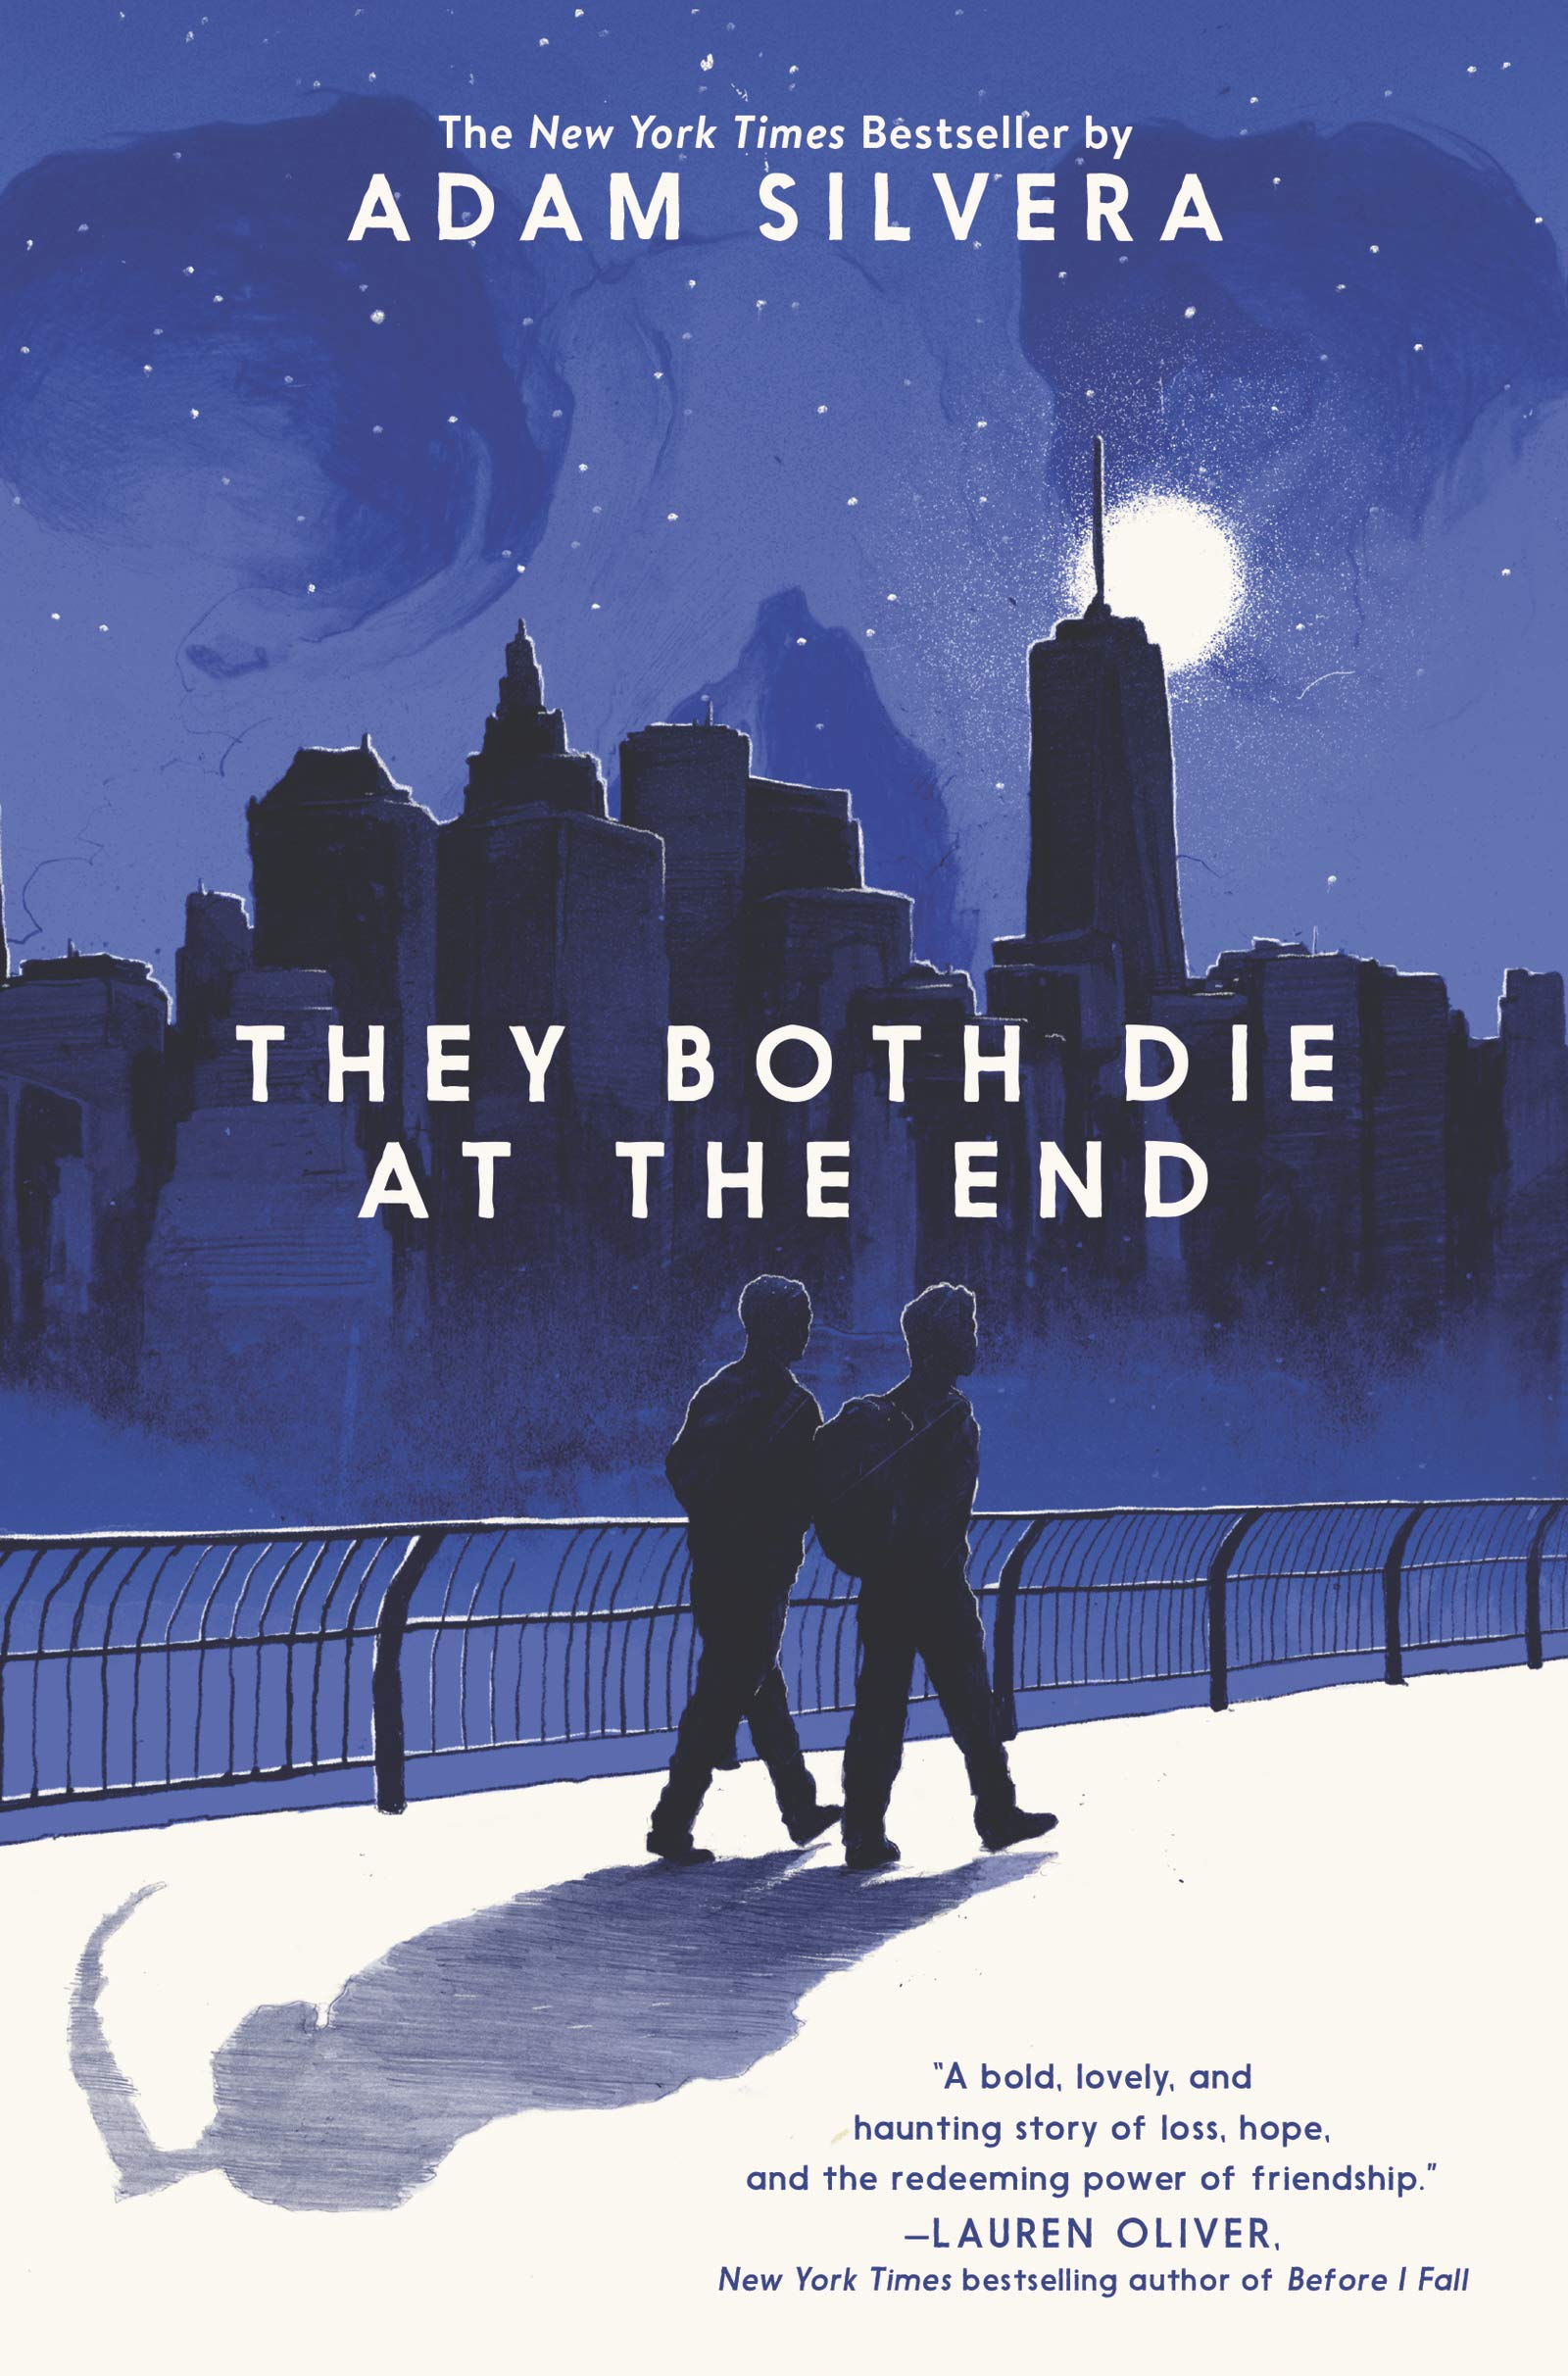 They Both Die at the End' by Adam Silvera